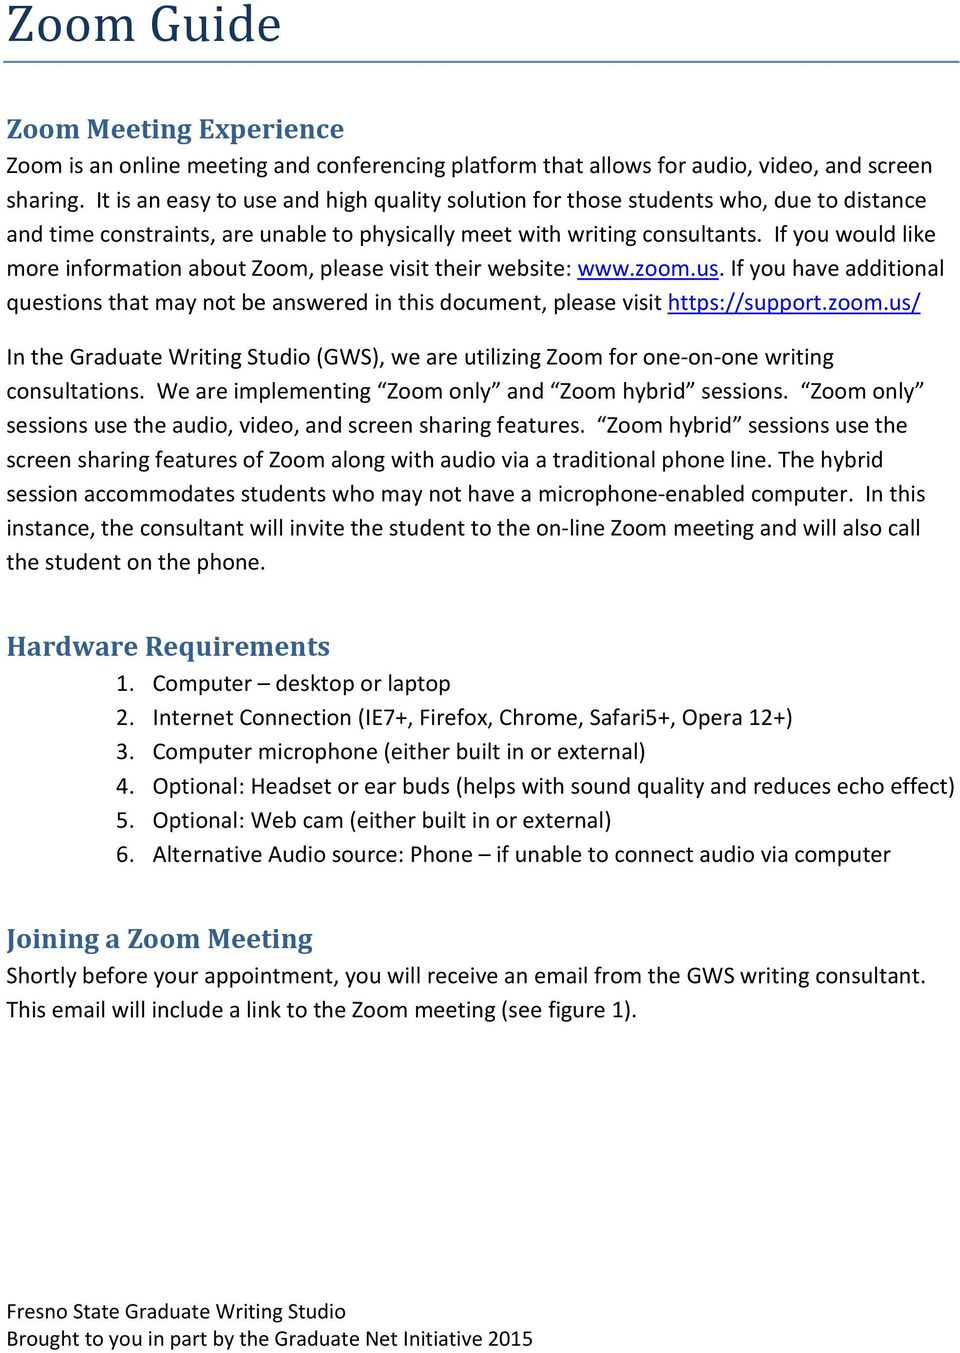 If you would like more information about Zoom, please visit their website: www.zoom.us. If you have additional questions that may not be answered in this document, please visit https://support.zoom.us/ In the Graduate Writing Studio (GWS), we are utilizing Zoom for one-on-one writing consultations.